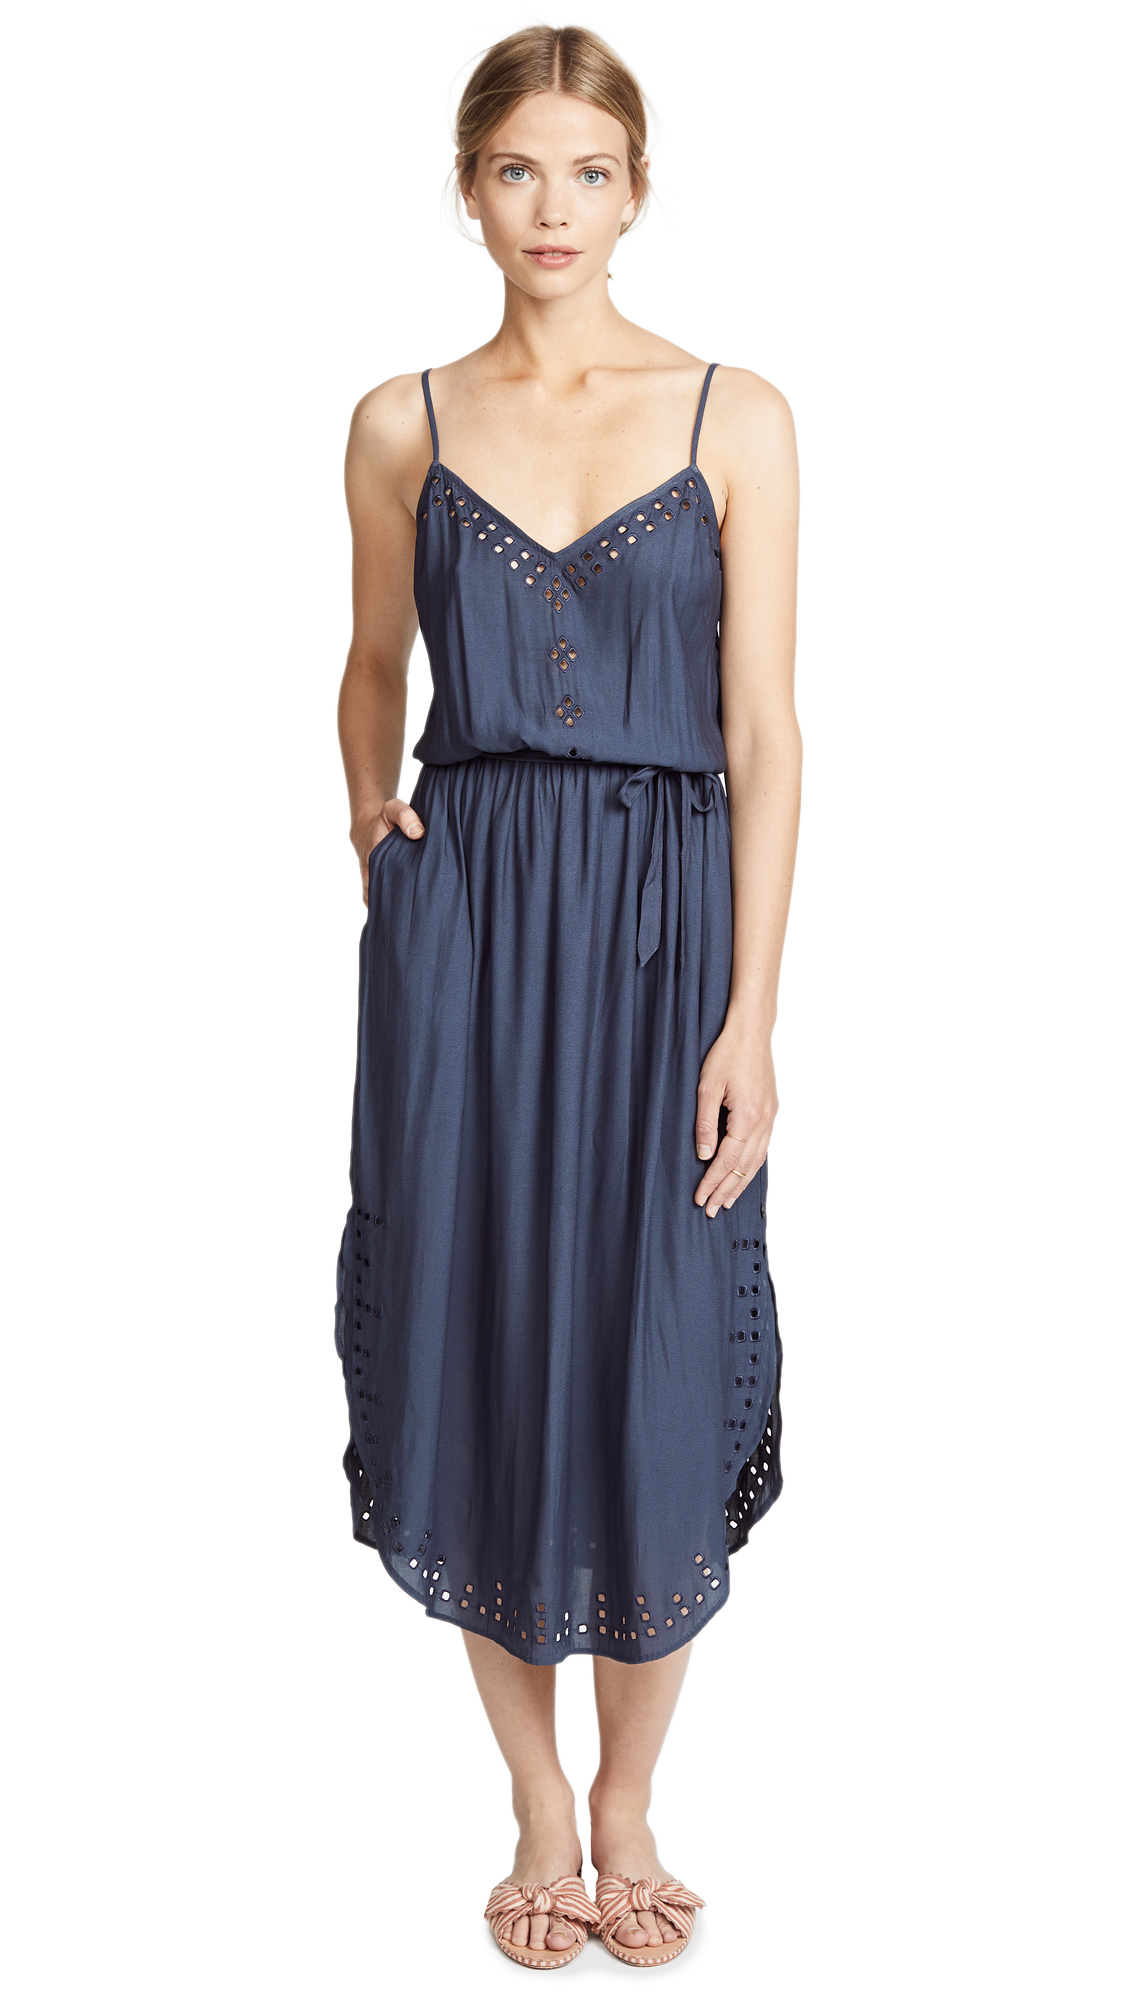 Scotch & Soda/Maison Scotch Strappy V Dress In Night